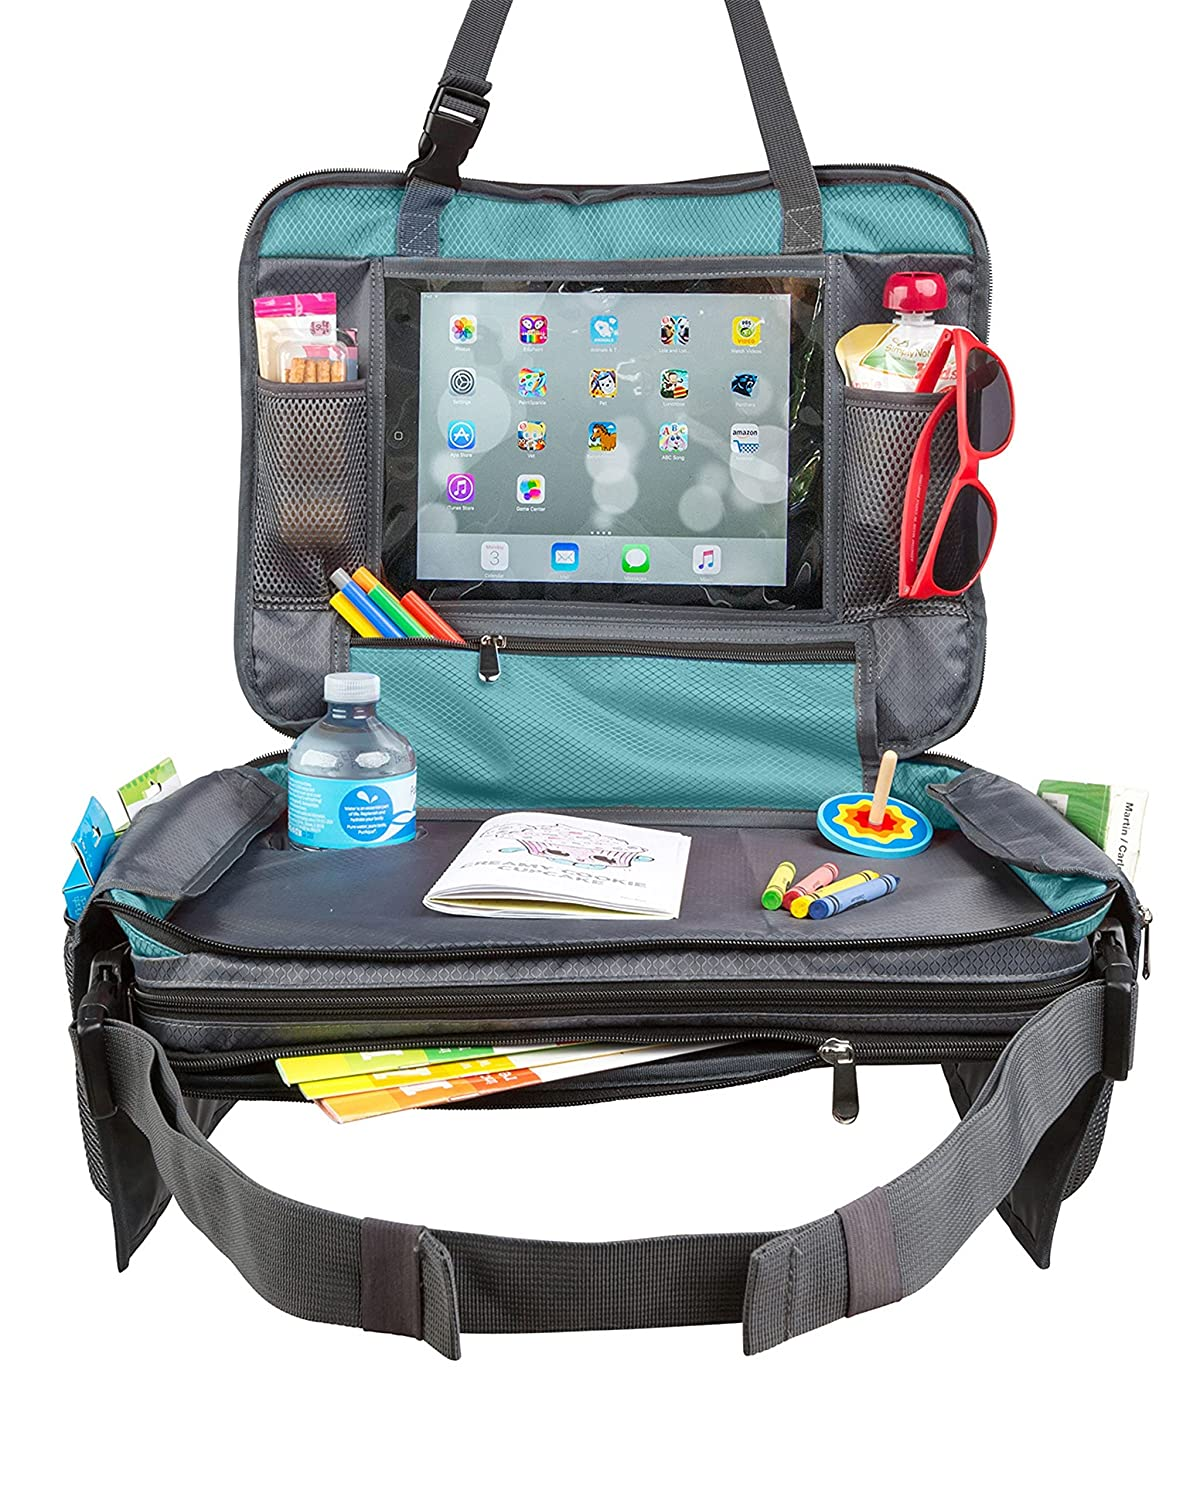 Kids Car Seat 1 year warranty Travel Industry No. 1 Tray Toddler Lap Featur Snack Play and